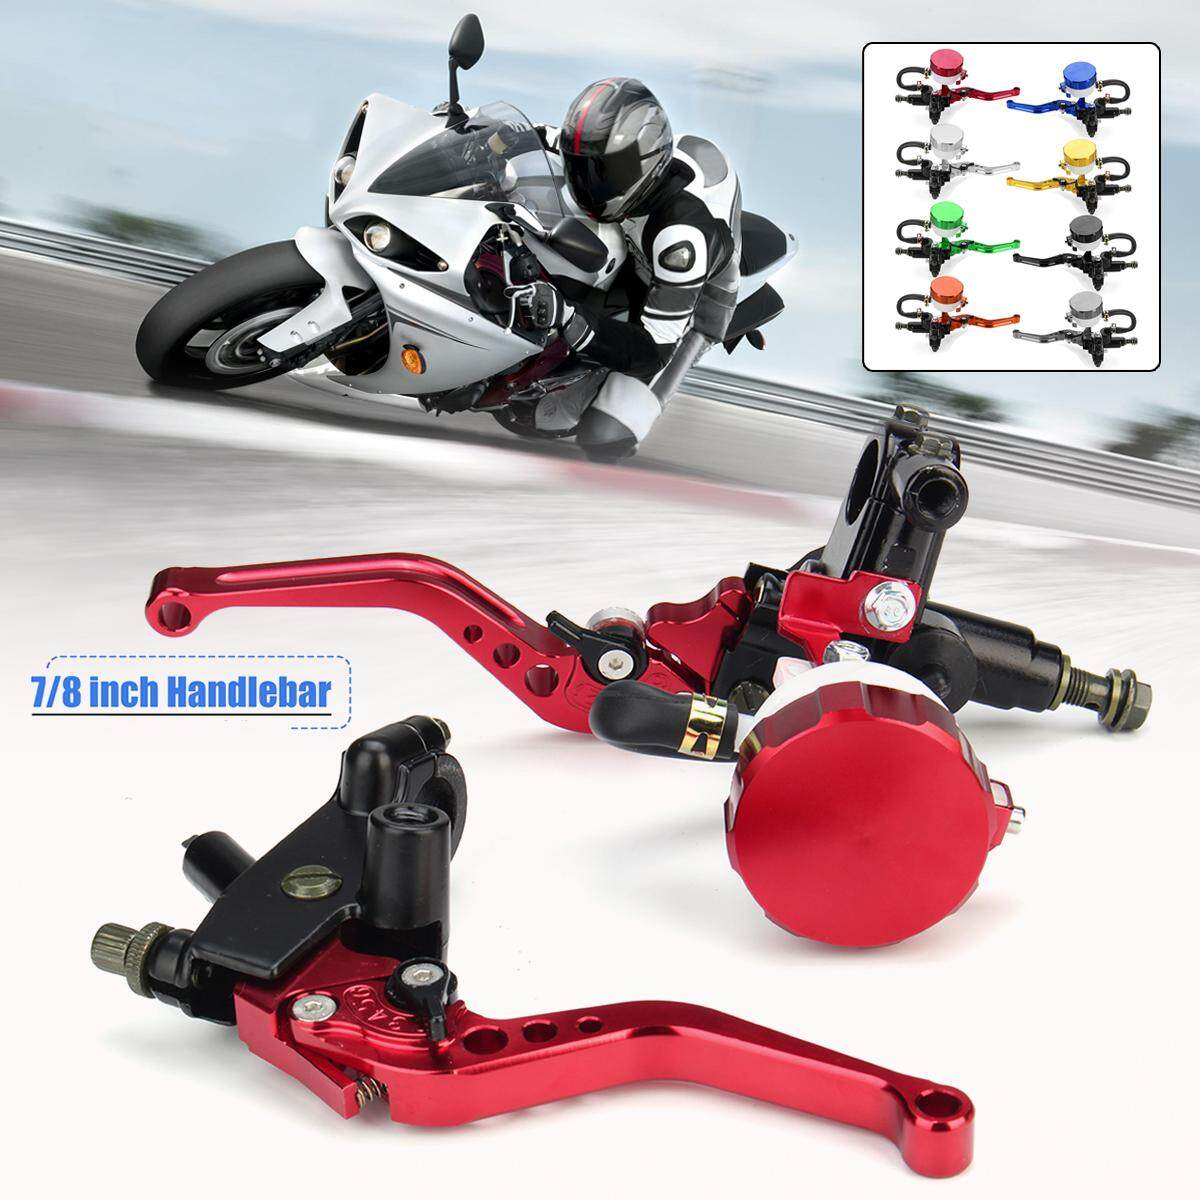 2x Motorcycle Scooter 7/8 22mm Adjustable Brake Clutch Lever Master Cylinder - Intl By Freebang.